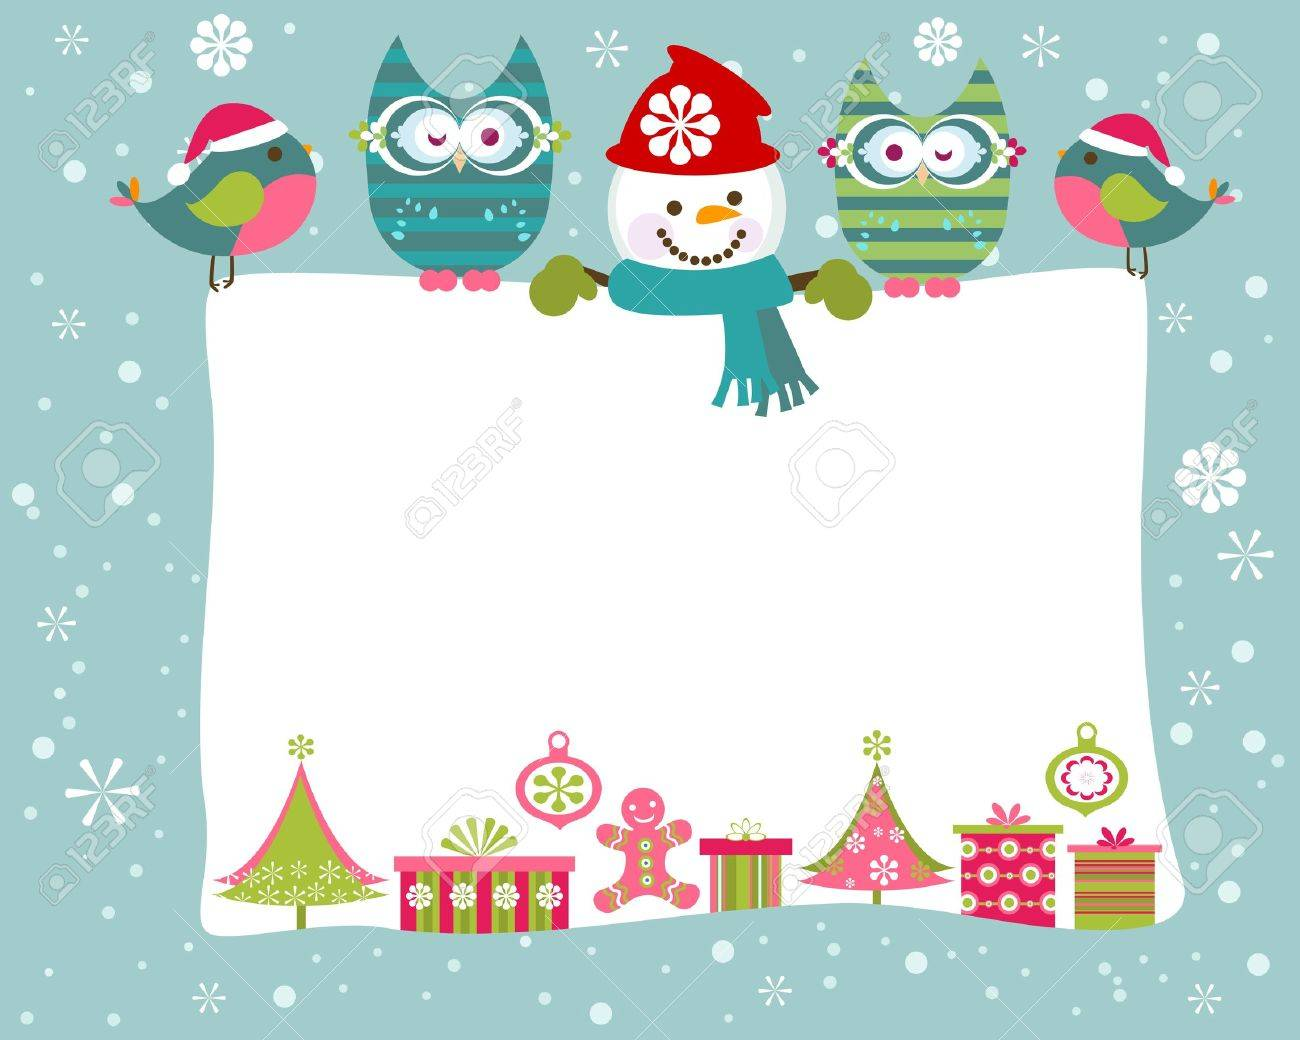 Christmas And New Year Greeting Card Royalty Free Cliparts, Vectors ...